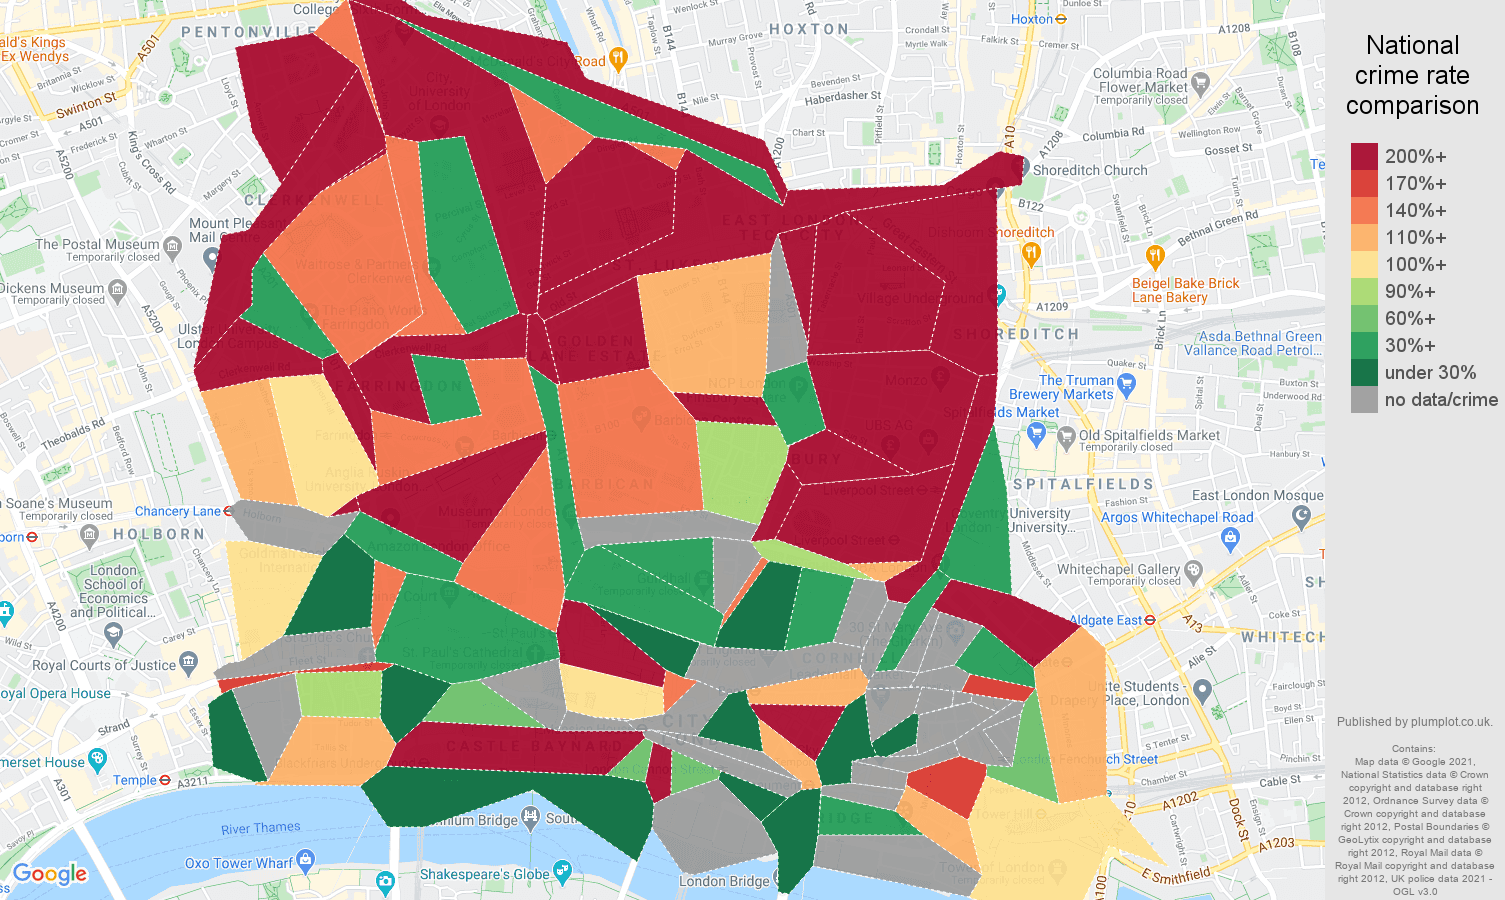 East Central London bicycle theft crime rate comparison map